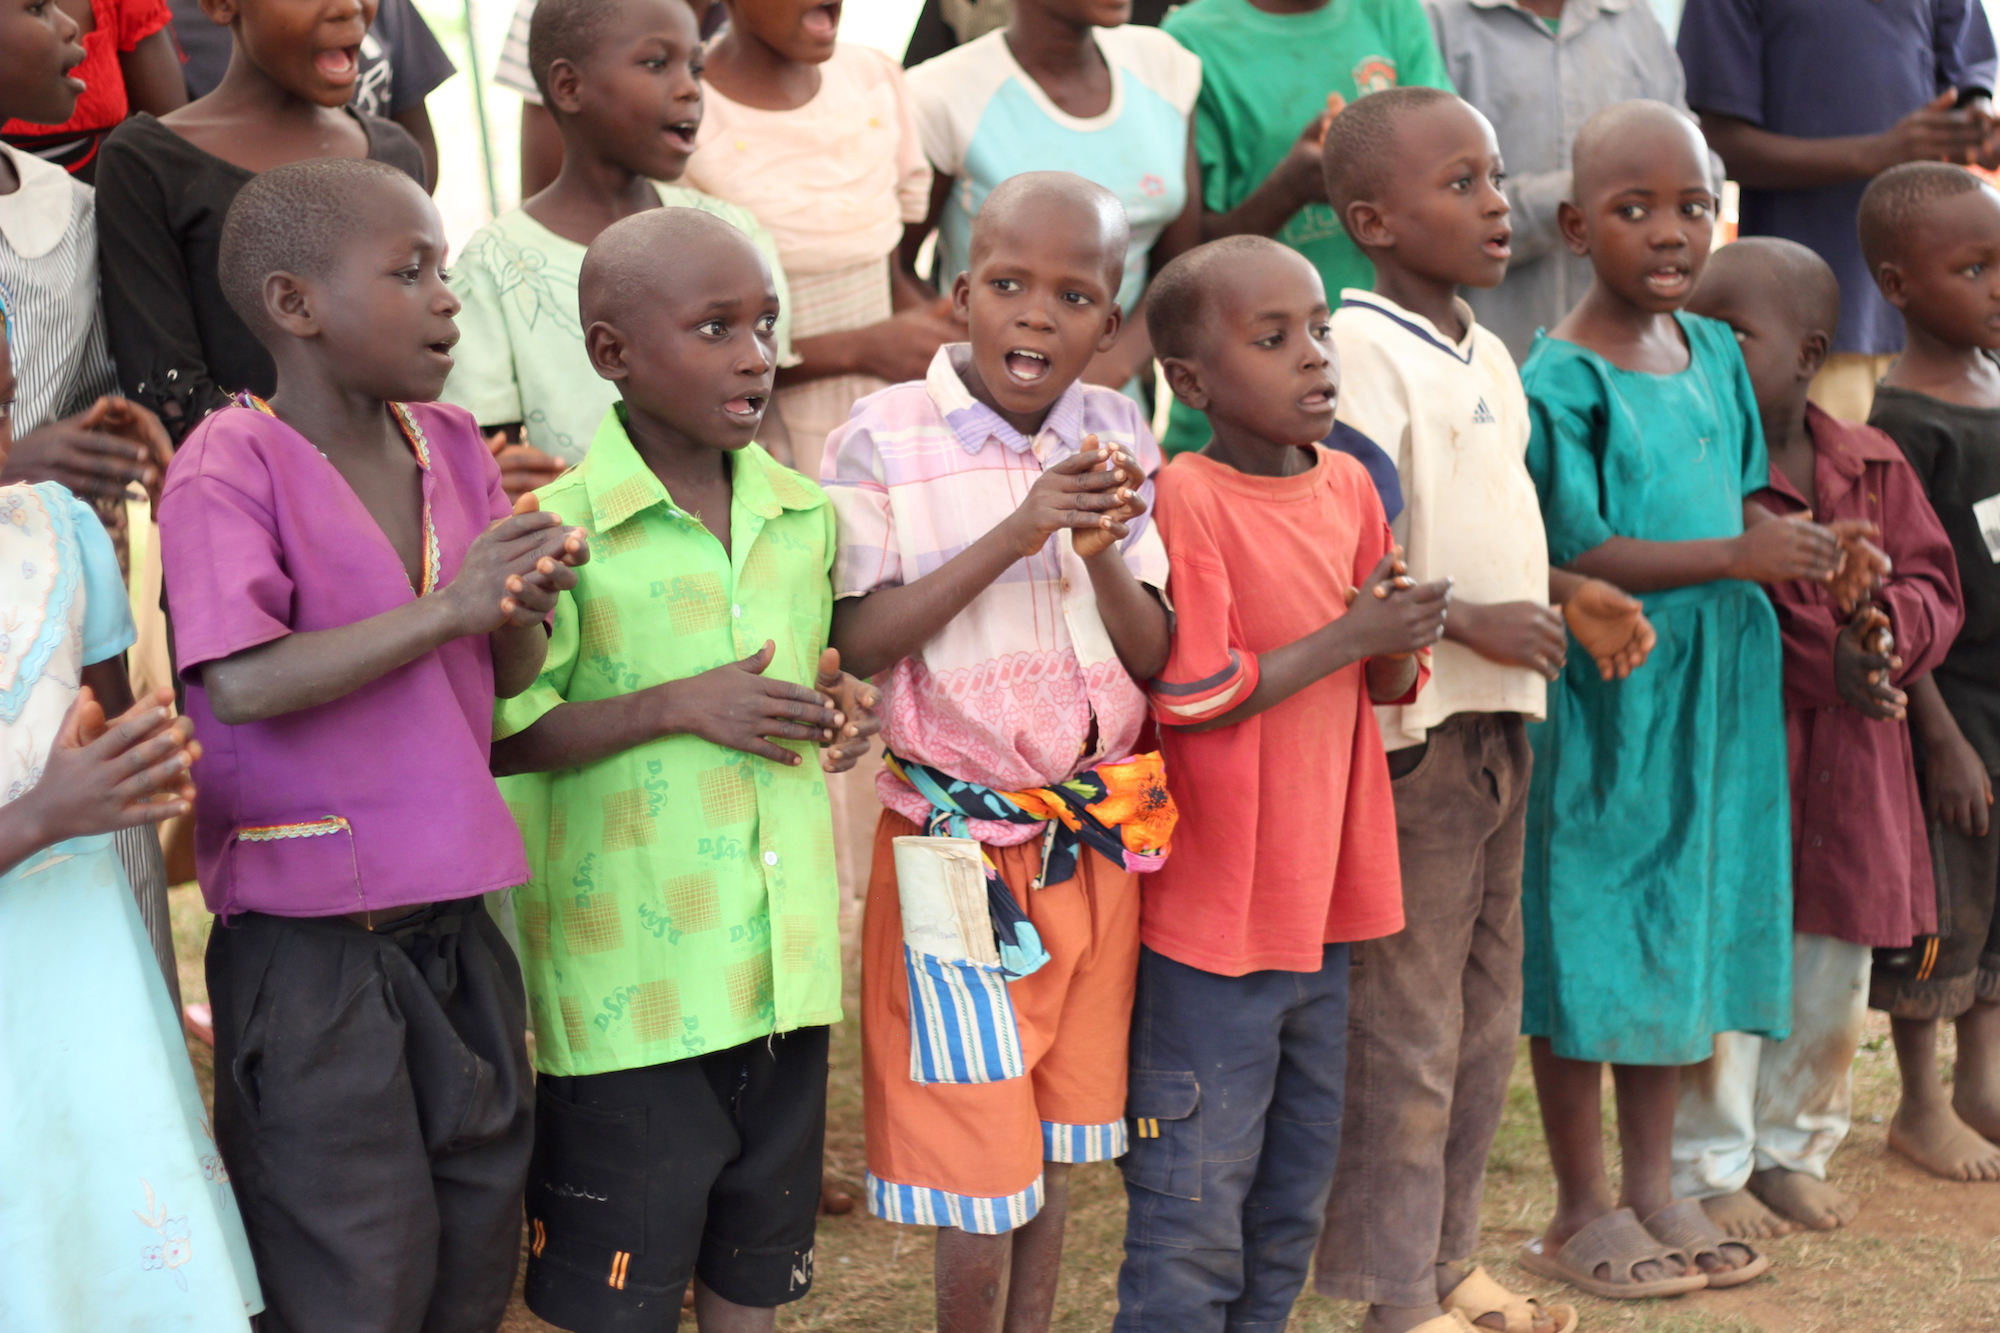 A group of singing children